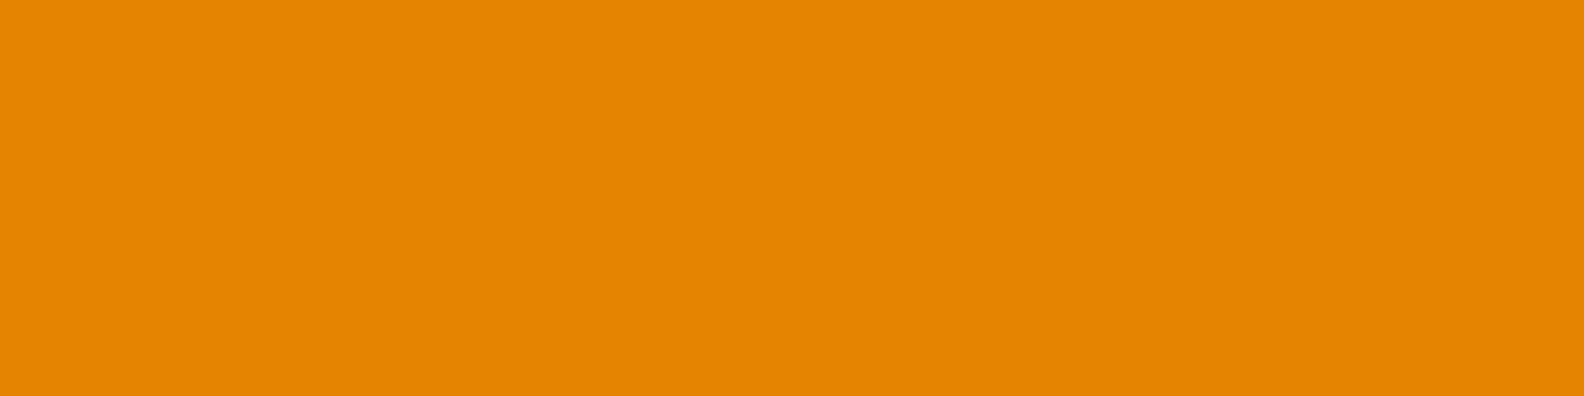 1584x396 Fulvous Solid Color Background